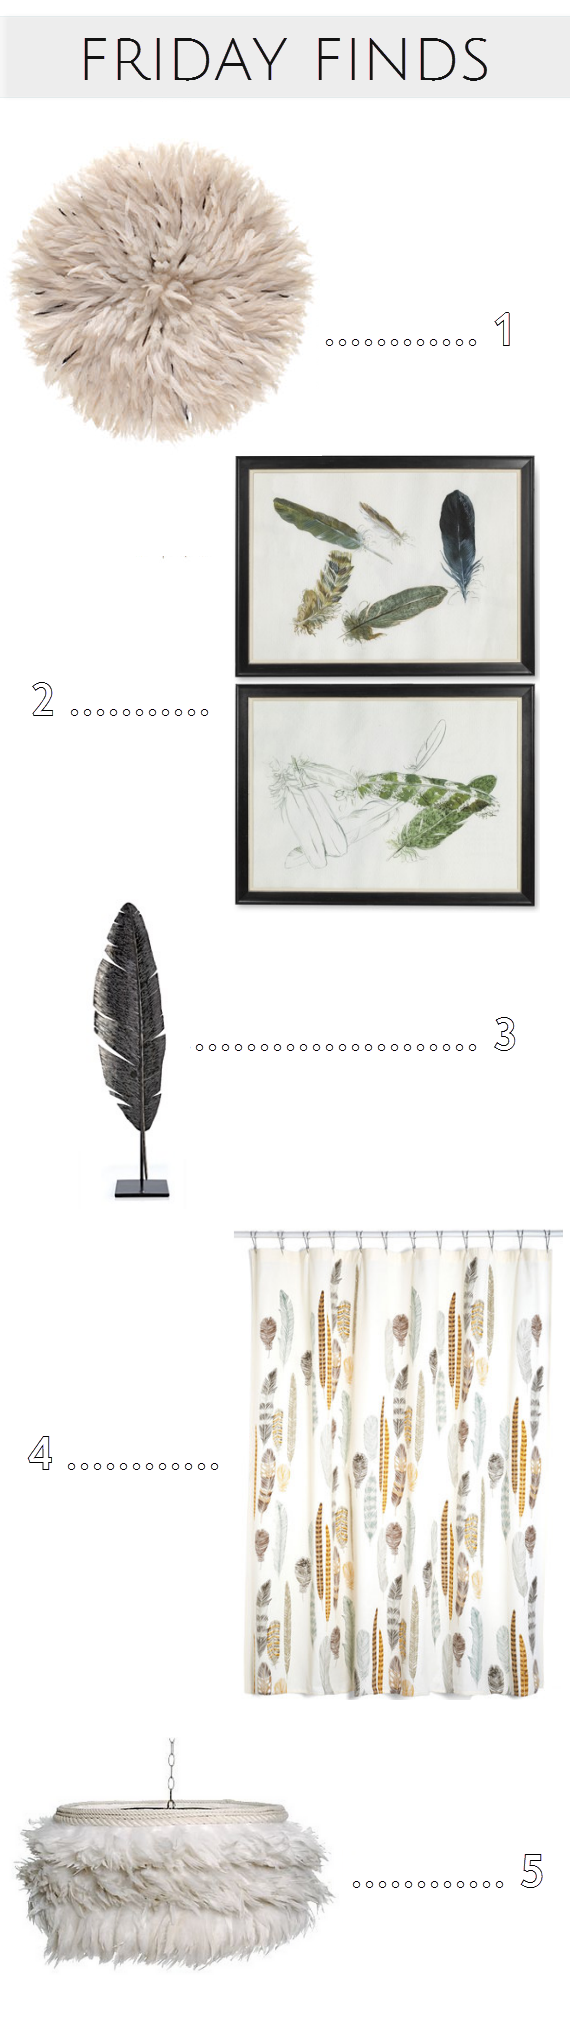 feather pattern decor finds - www.simplifiedbee.com #feathers